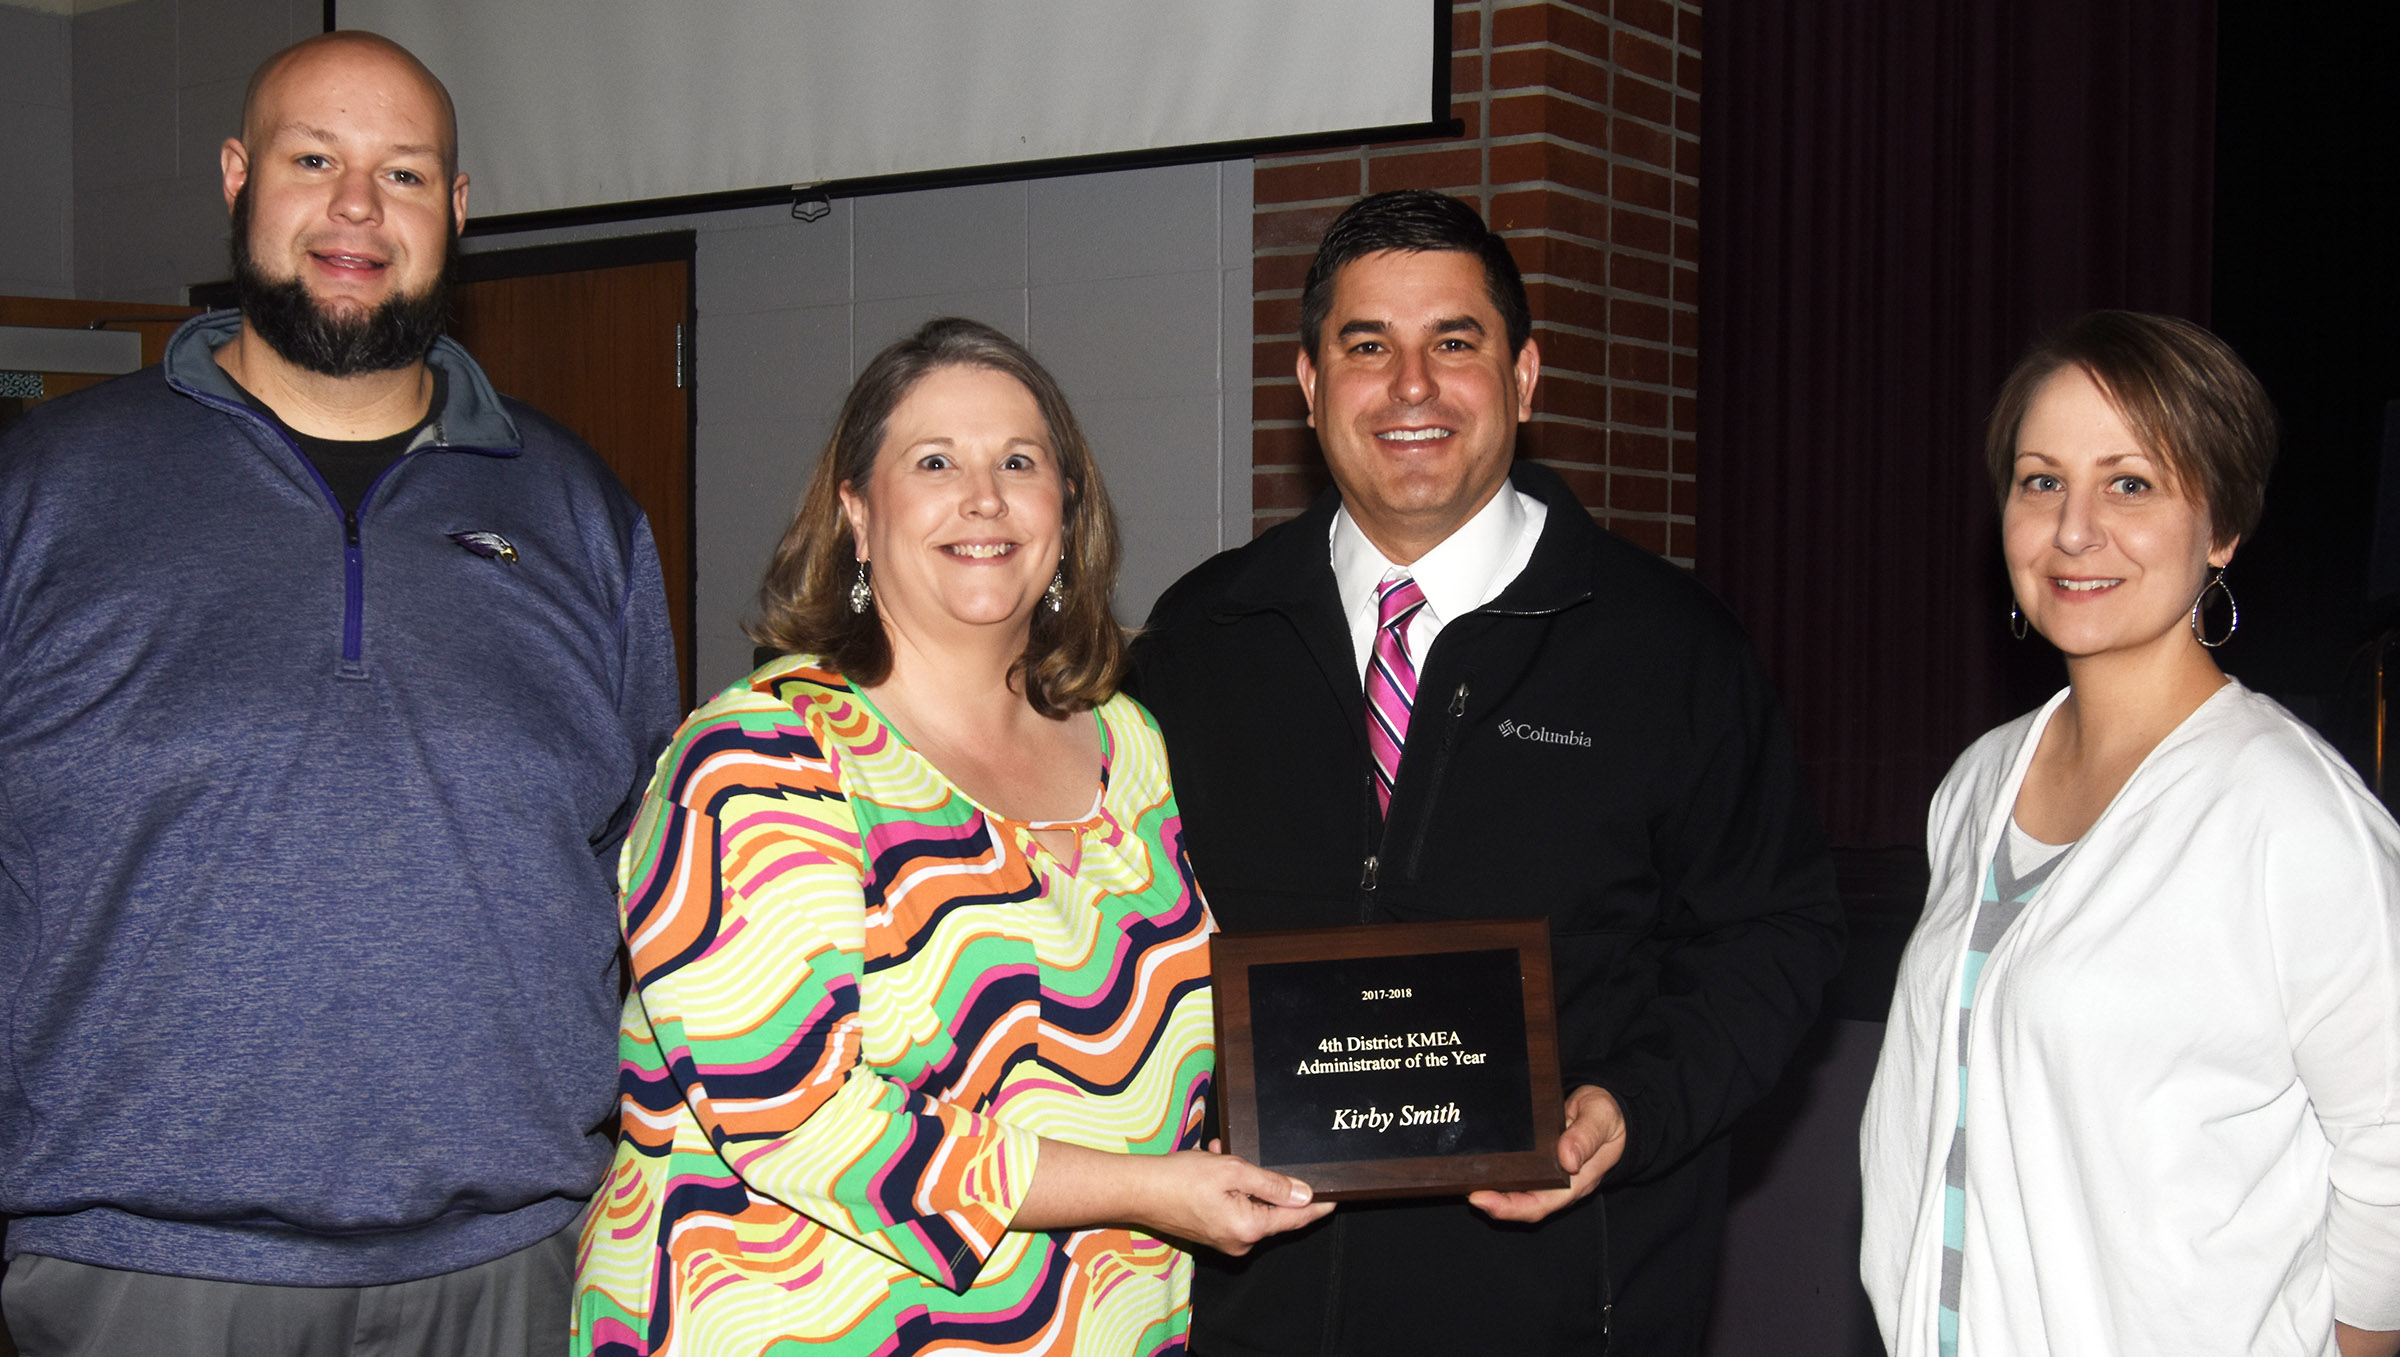 Campbellsville Independent Schools Superintendent Kirby Smith has received 4th District Kentucky Music Educators Association Administrator of the Year award for 2017-2018. Campbellsville High School band director Zach Shelton, at left, nominated Smith for the award, and he and Campbellsville Elementary School music teacher Cyndi Chadwick, second from left, and Campbellsville Middle School music teacher Jessica Floyd, at right, spoke at the 4th District fall meeting about how Smith strongly supports all the CIS arts programs.